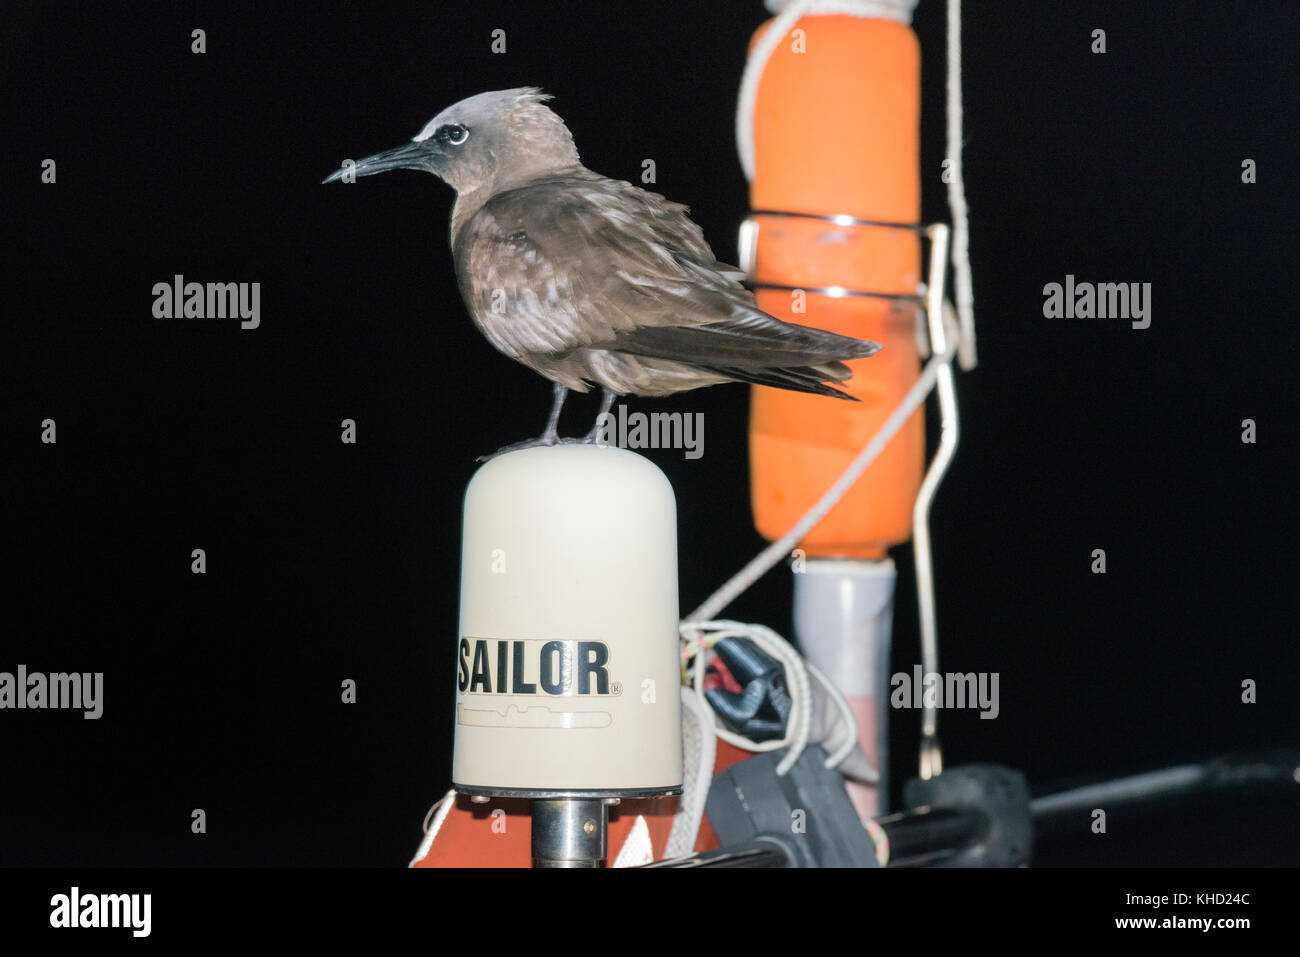 A brown noddy hitches a lift, sitting on the satellite antenna of a boat sailing in the South Atlantic Ocean at Stock Photo